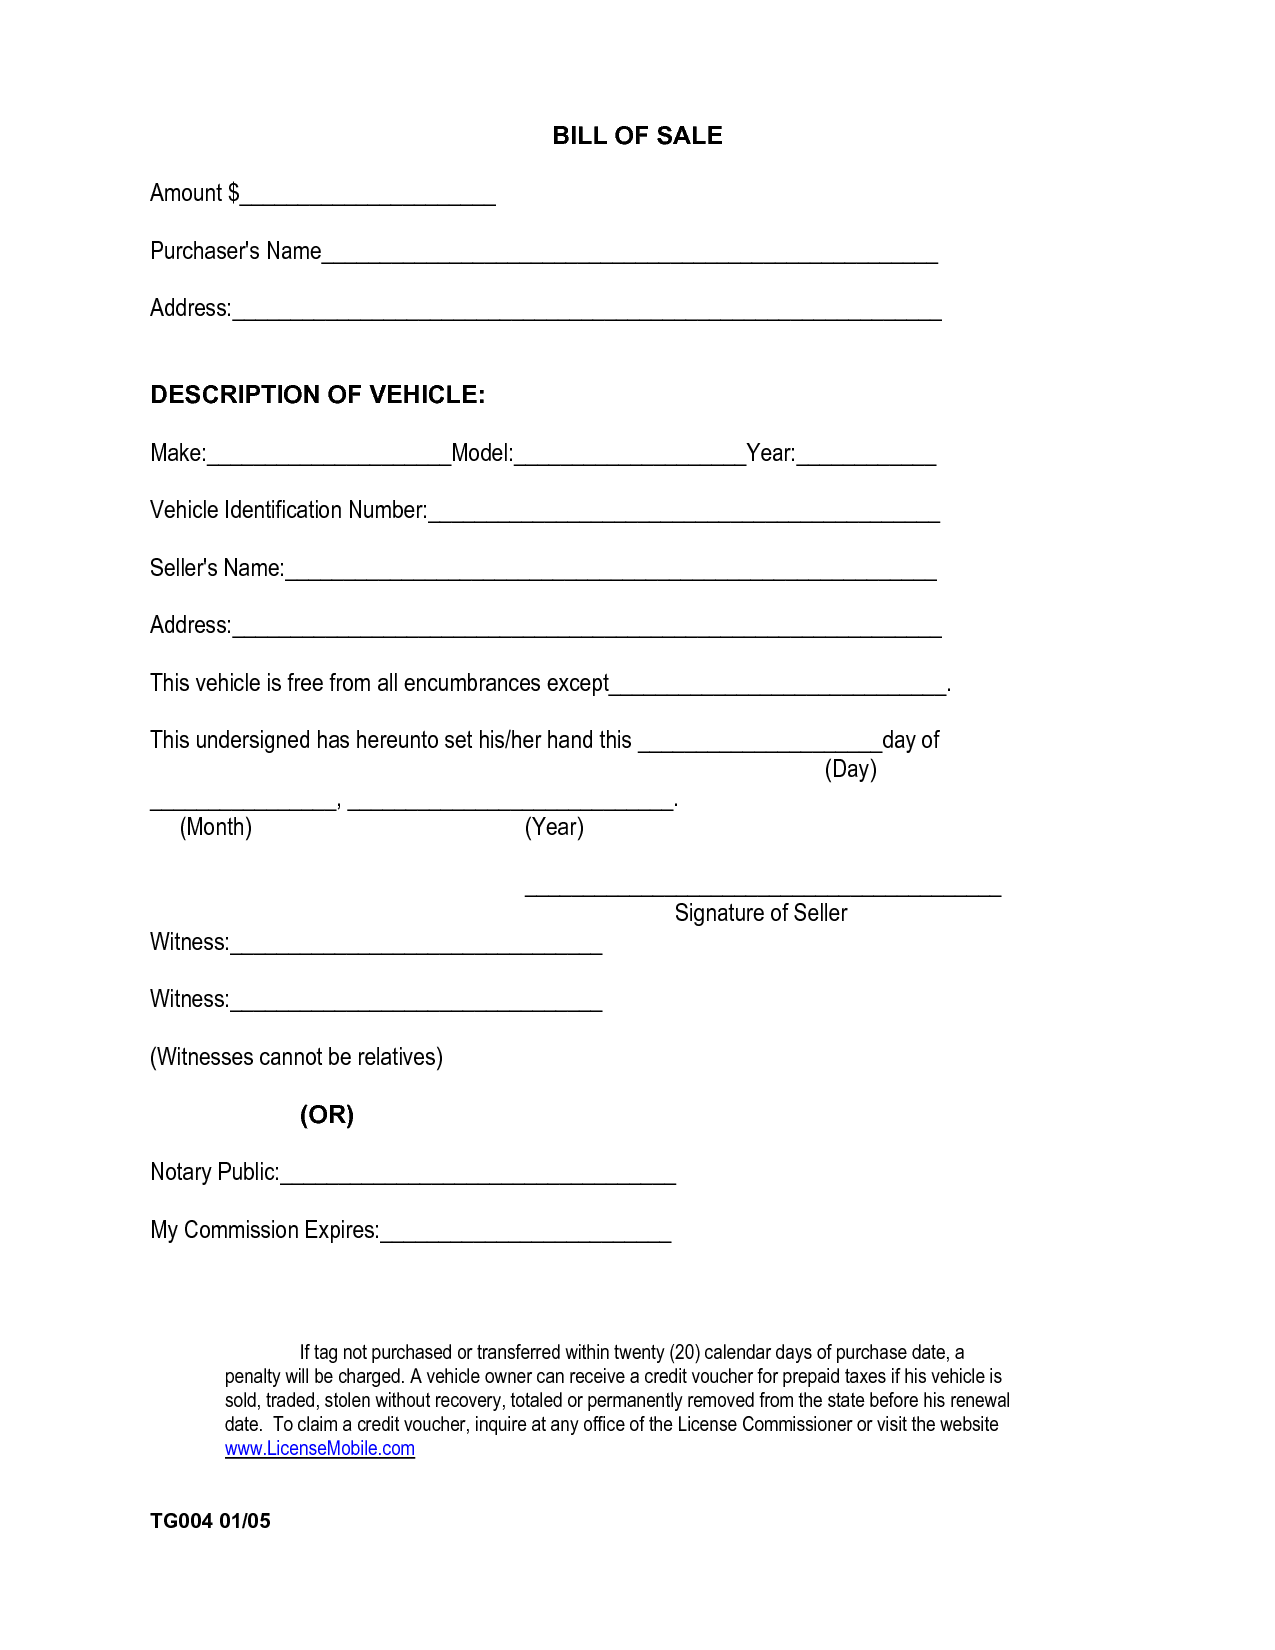 Bill Of Sale Template for A Car and Printable Sample Car Bill Of Sale form Laywers Template forms